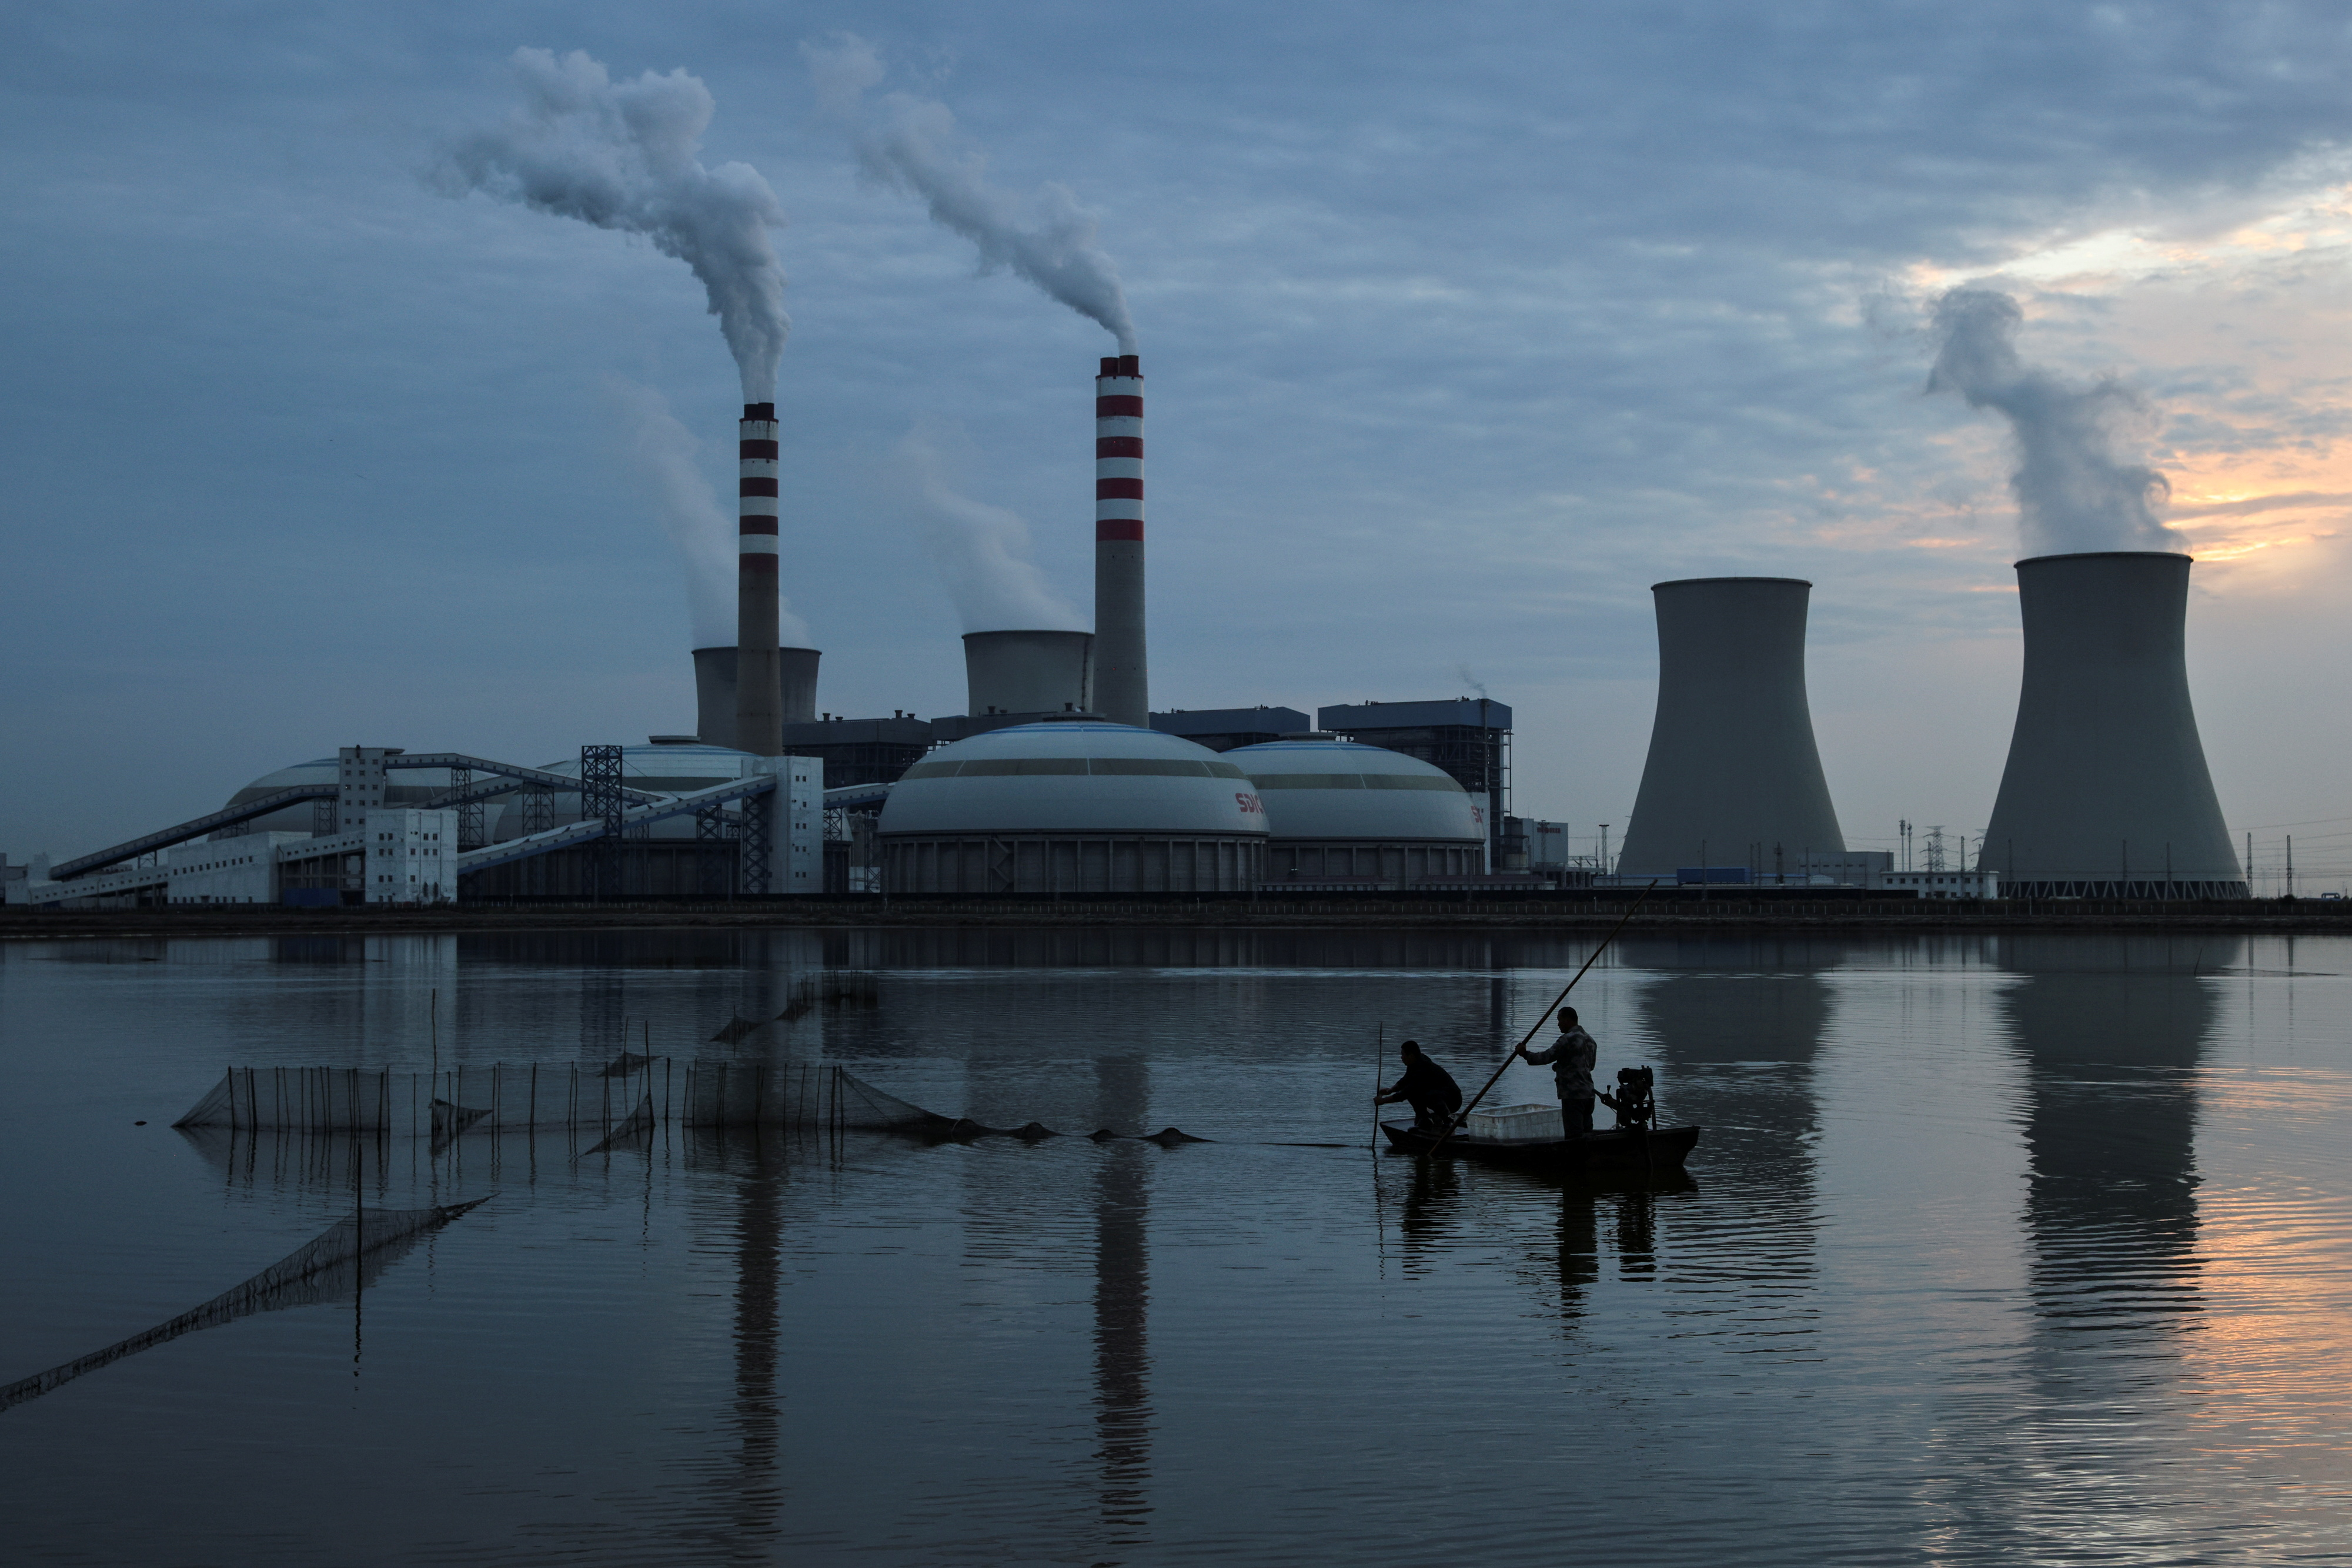 Fishermen sail a boat past a power plant of the State Development and Investment Corporation (SDIC) outside Tianjin, China, October 14, 2021. REUTERS/Thomas Peter